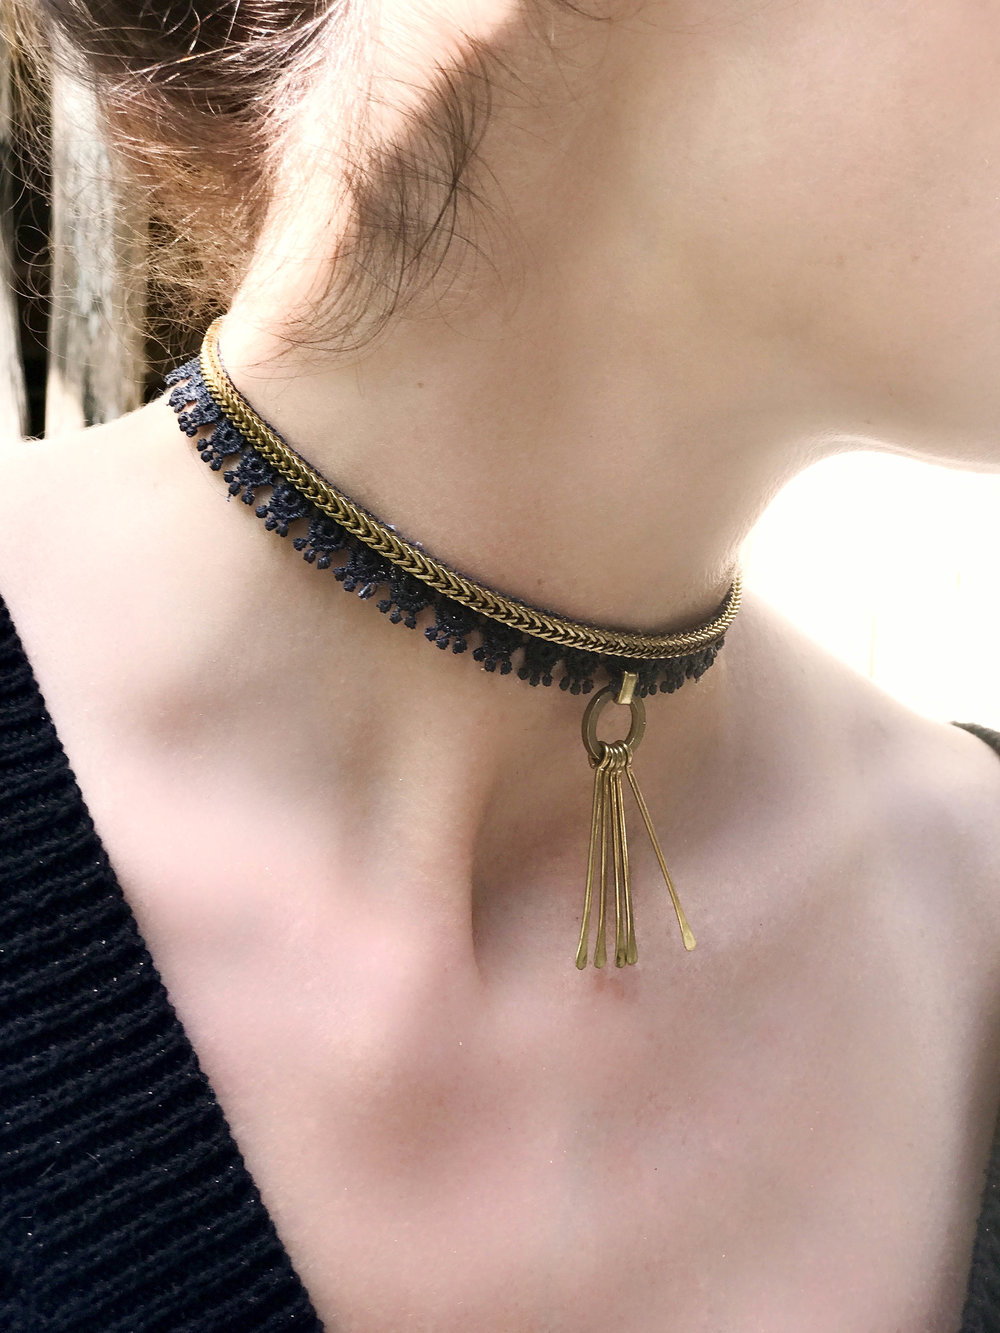 Tardust choker (click here for details)